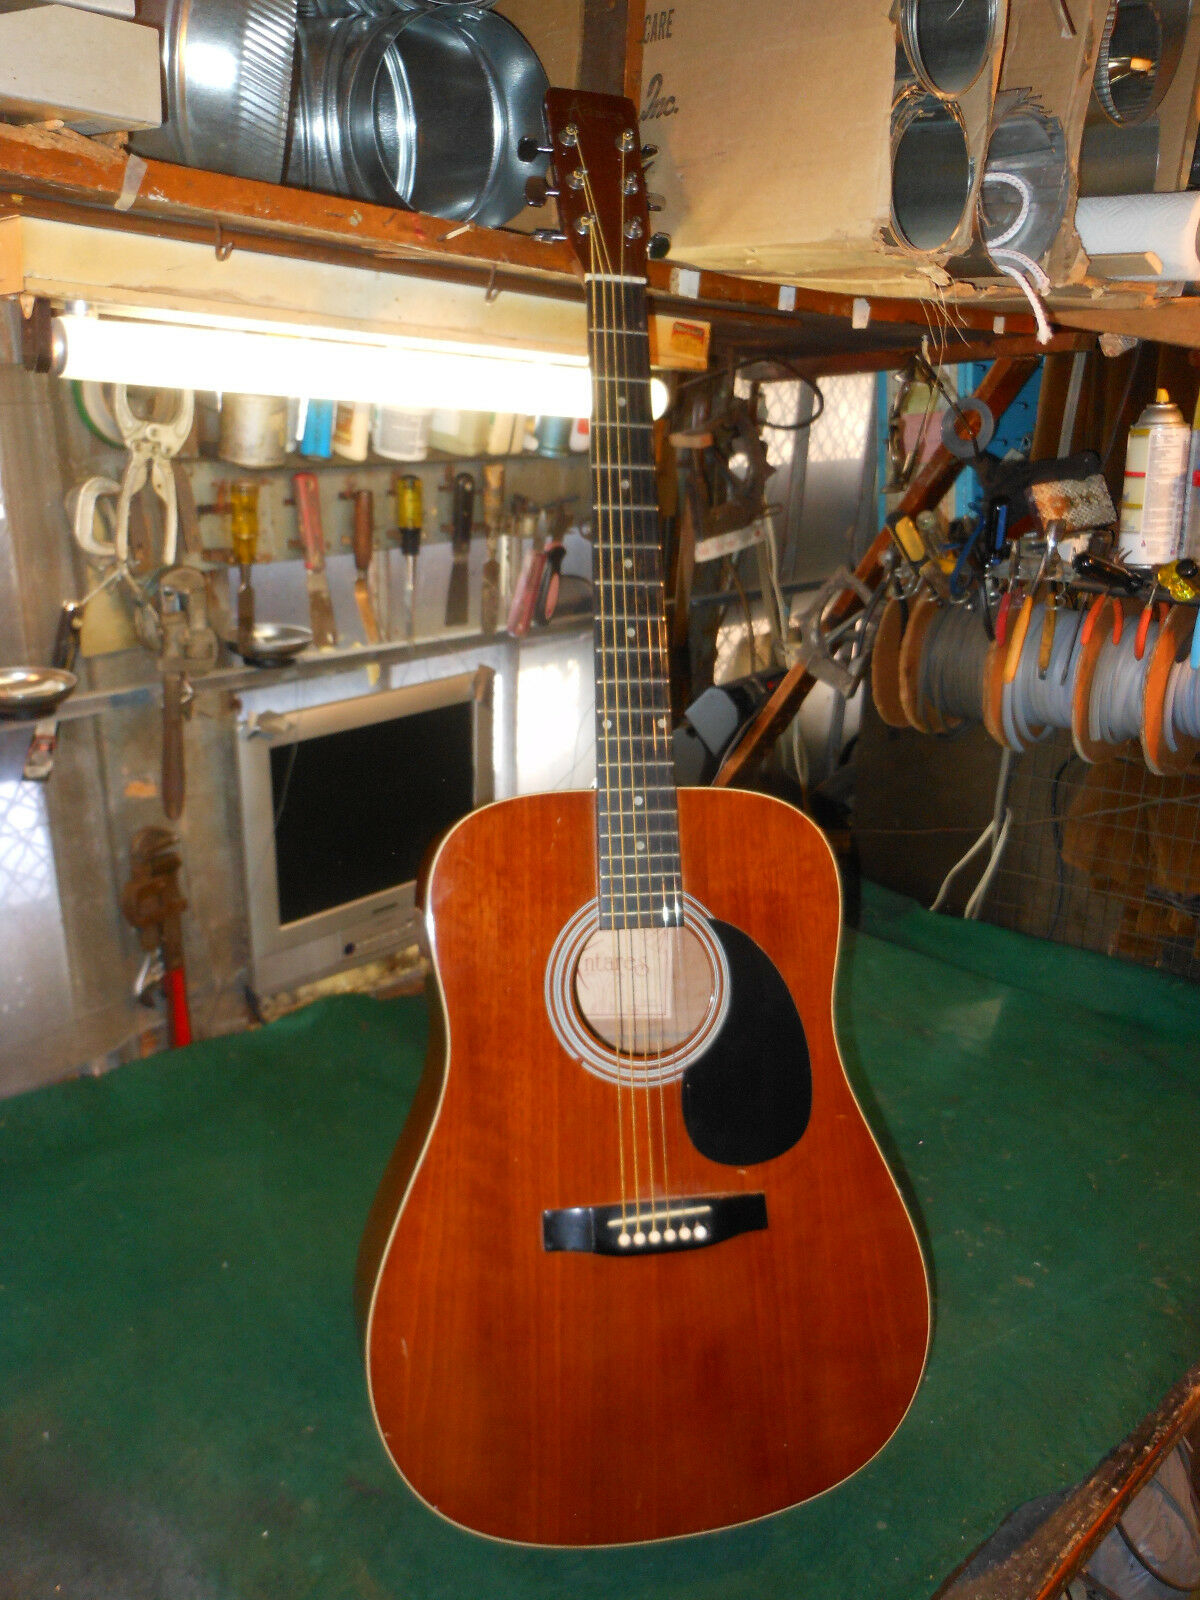 ANTARES DX-24 ACOUSTIC GUITAR Plays and sounds good. needs TLC..